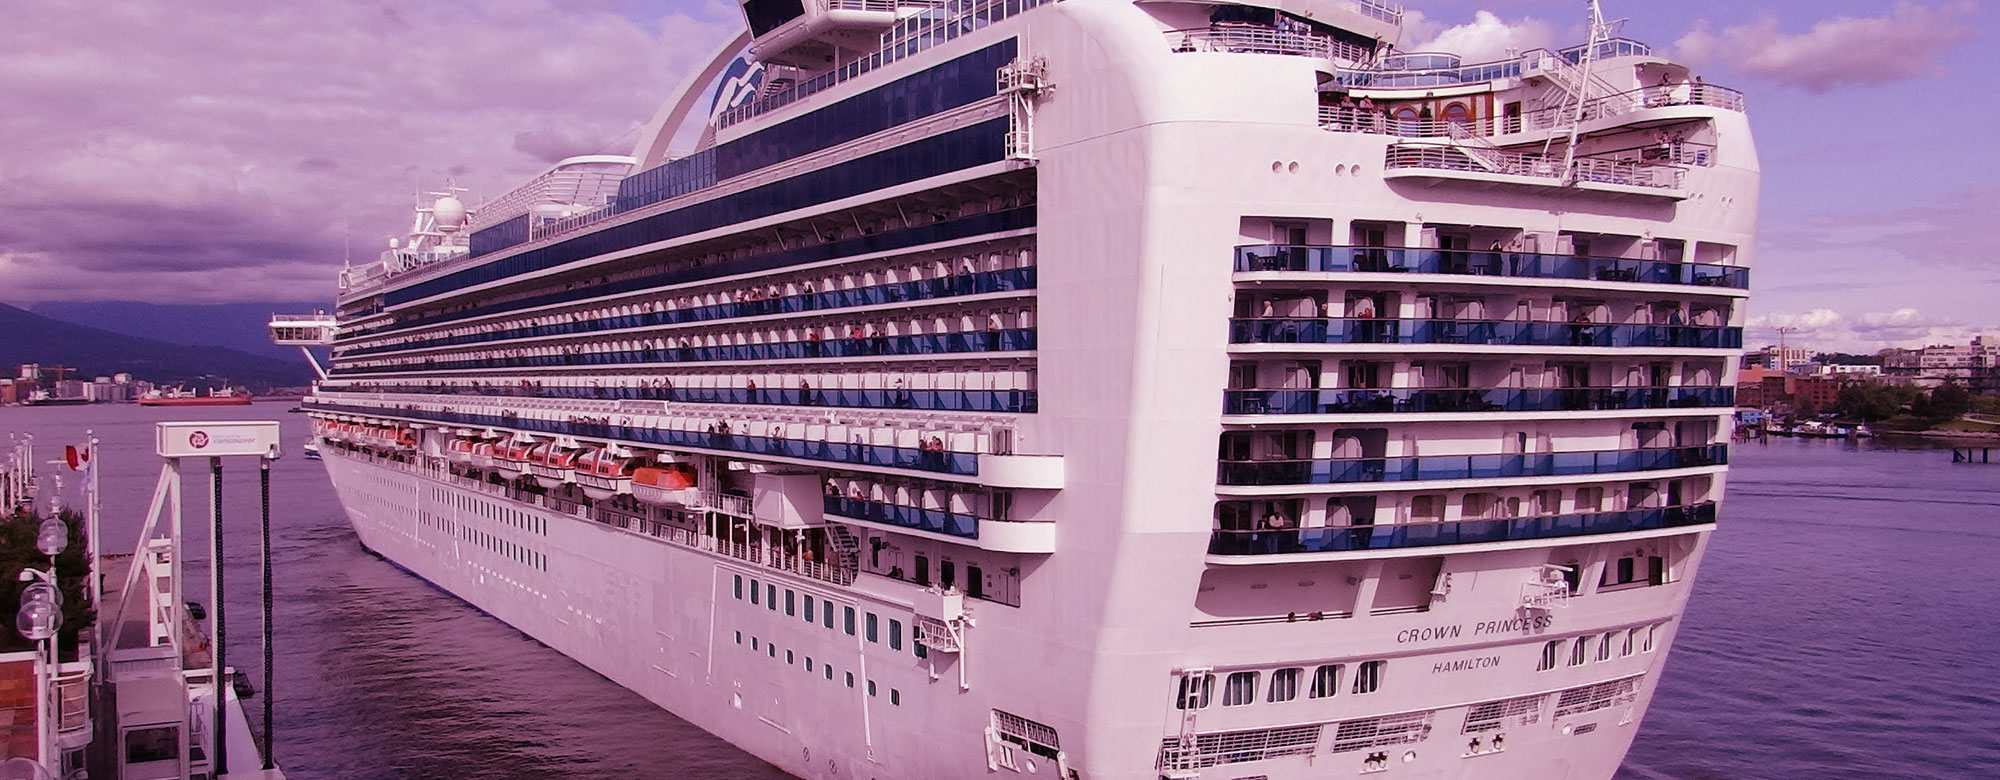 Crown Princess Liner